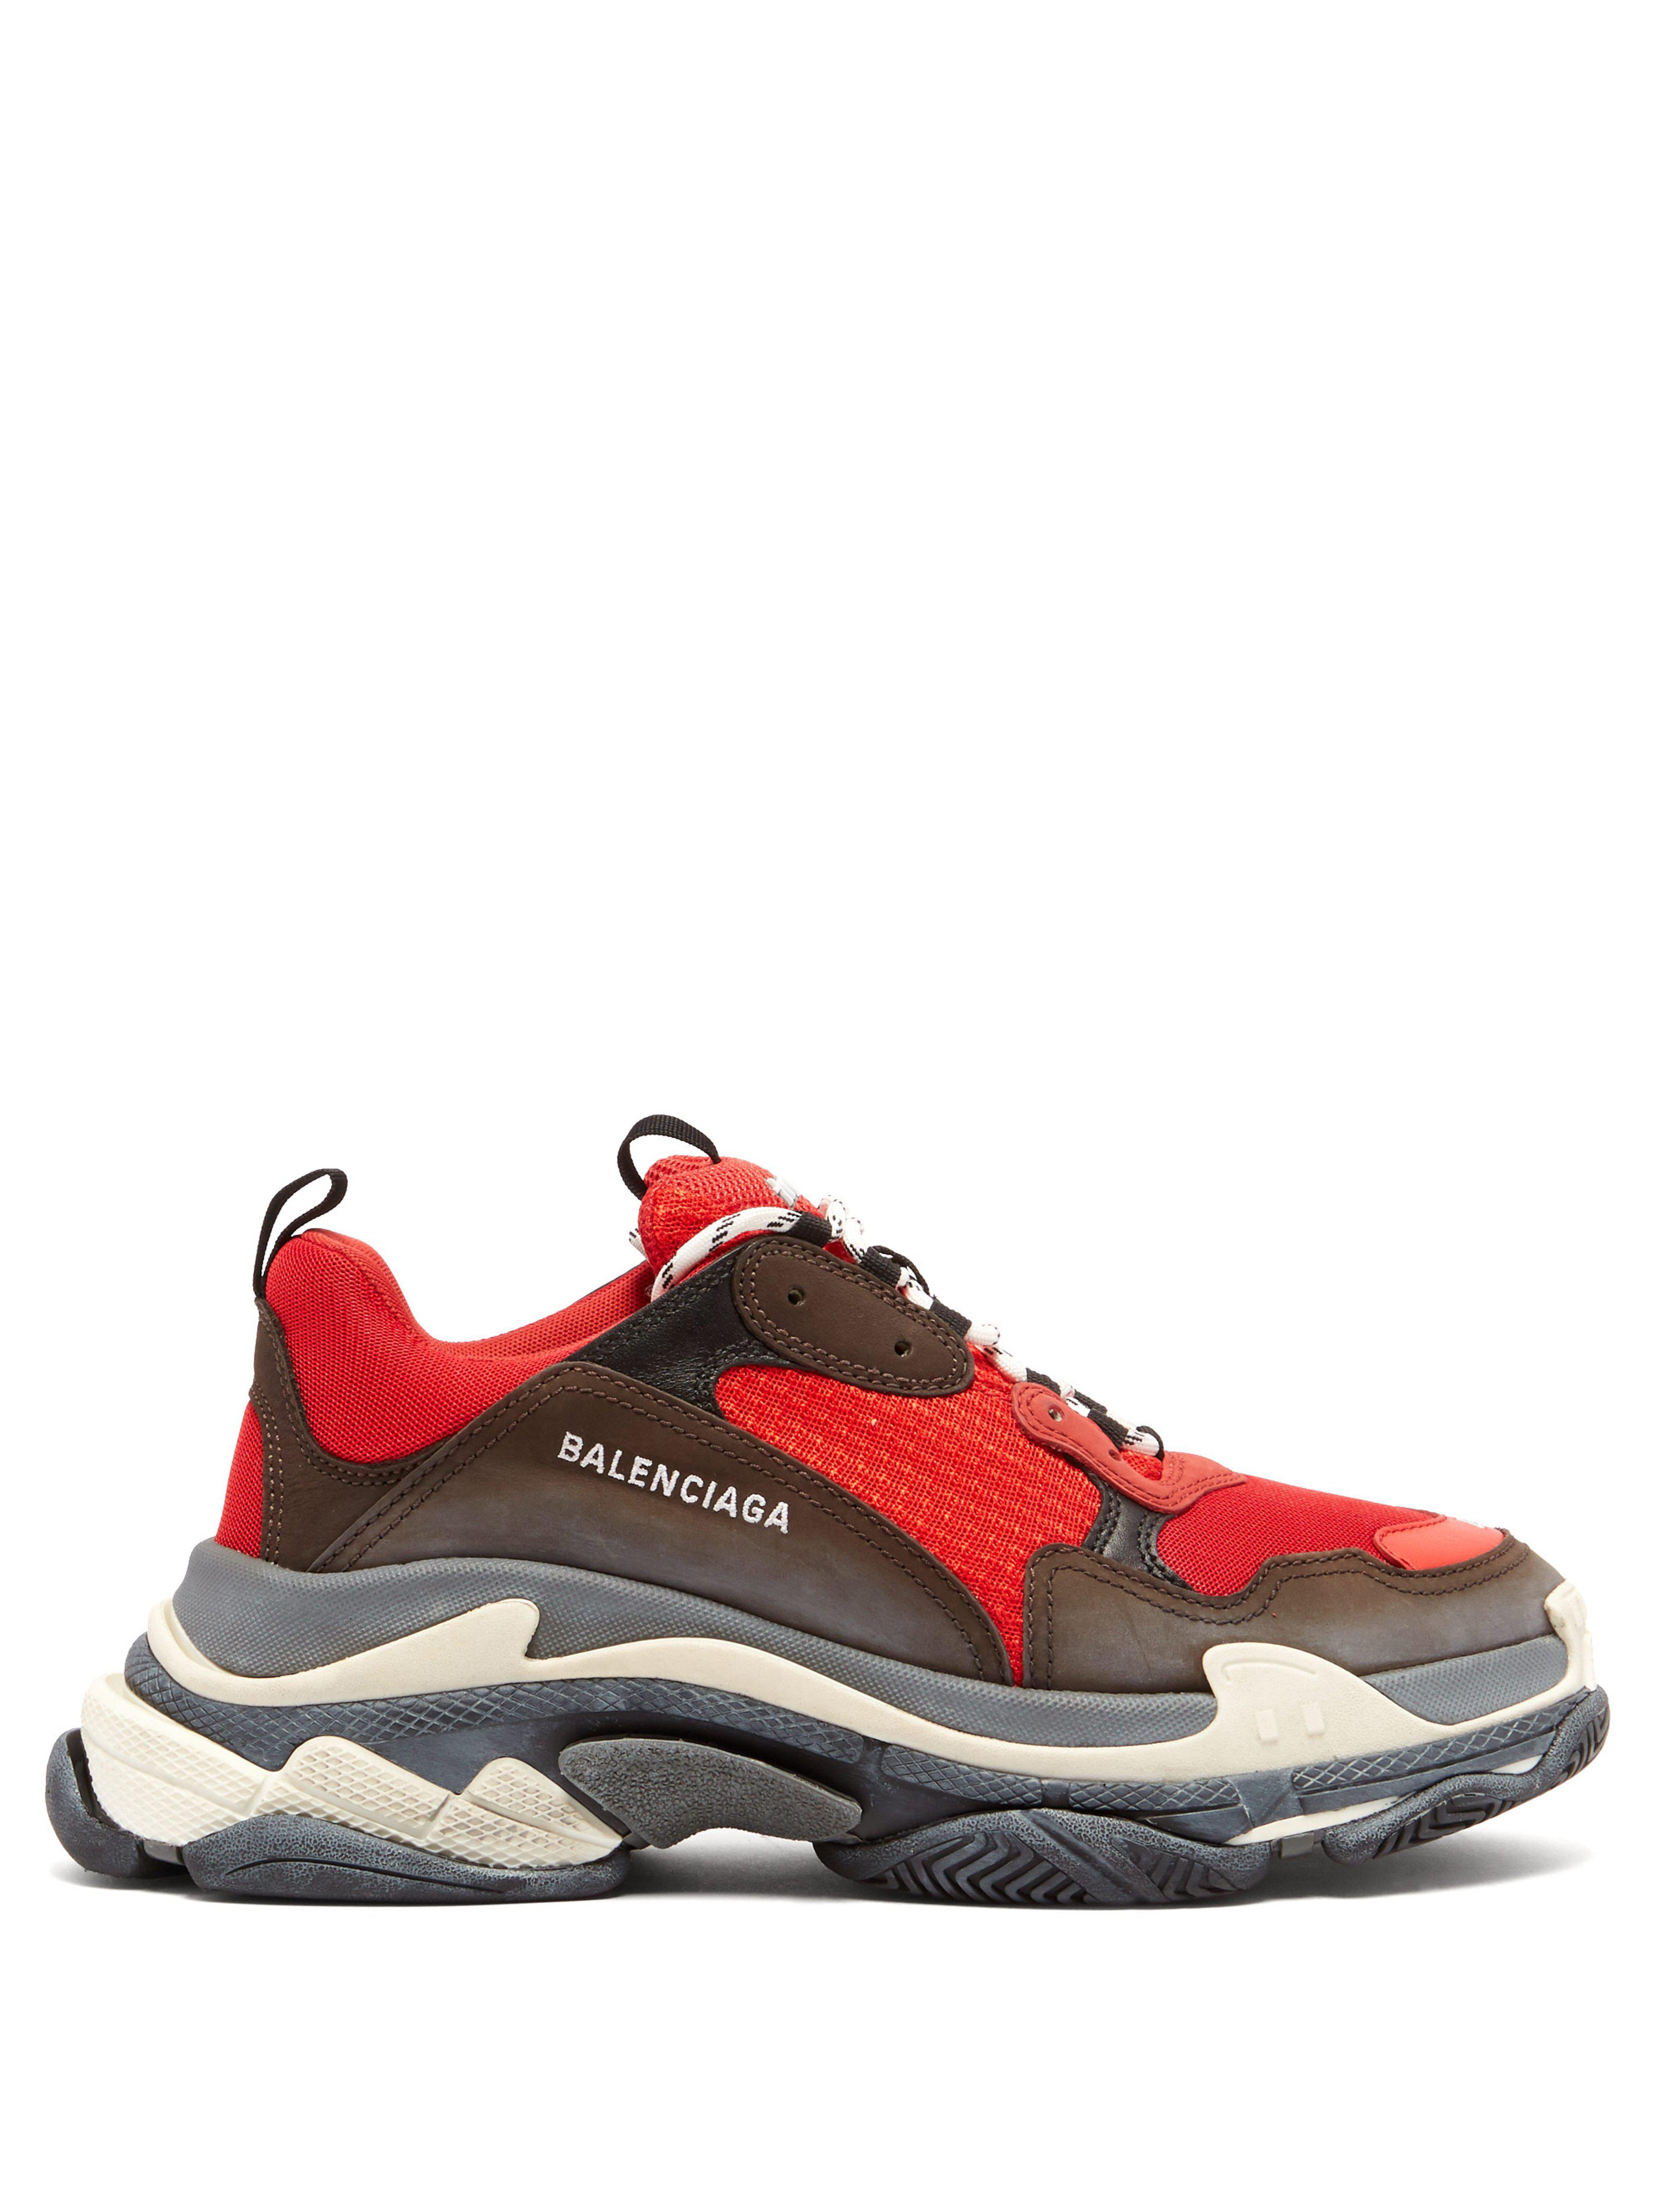 0d19e94c35df Balenciaga - Red Capsule Triple S Runner Leather And Mesh Trainers for Men  - Lyst. View fullscreen